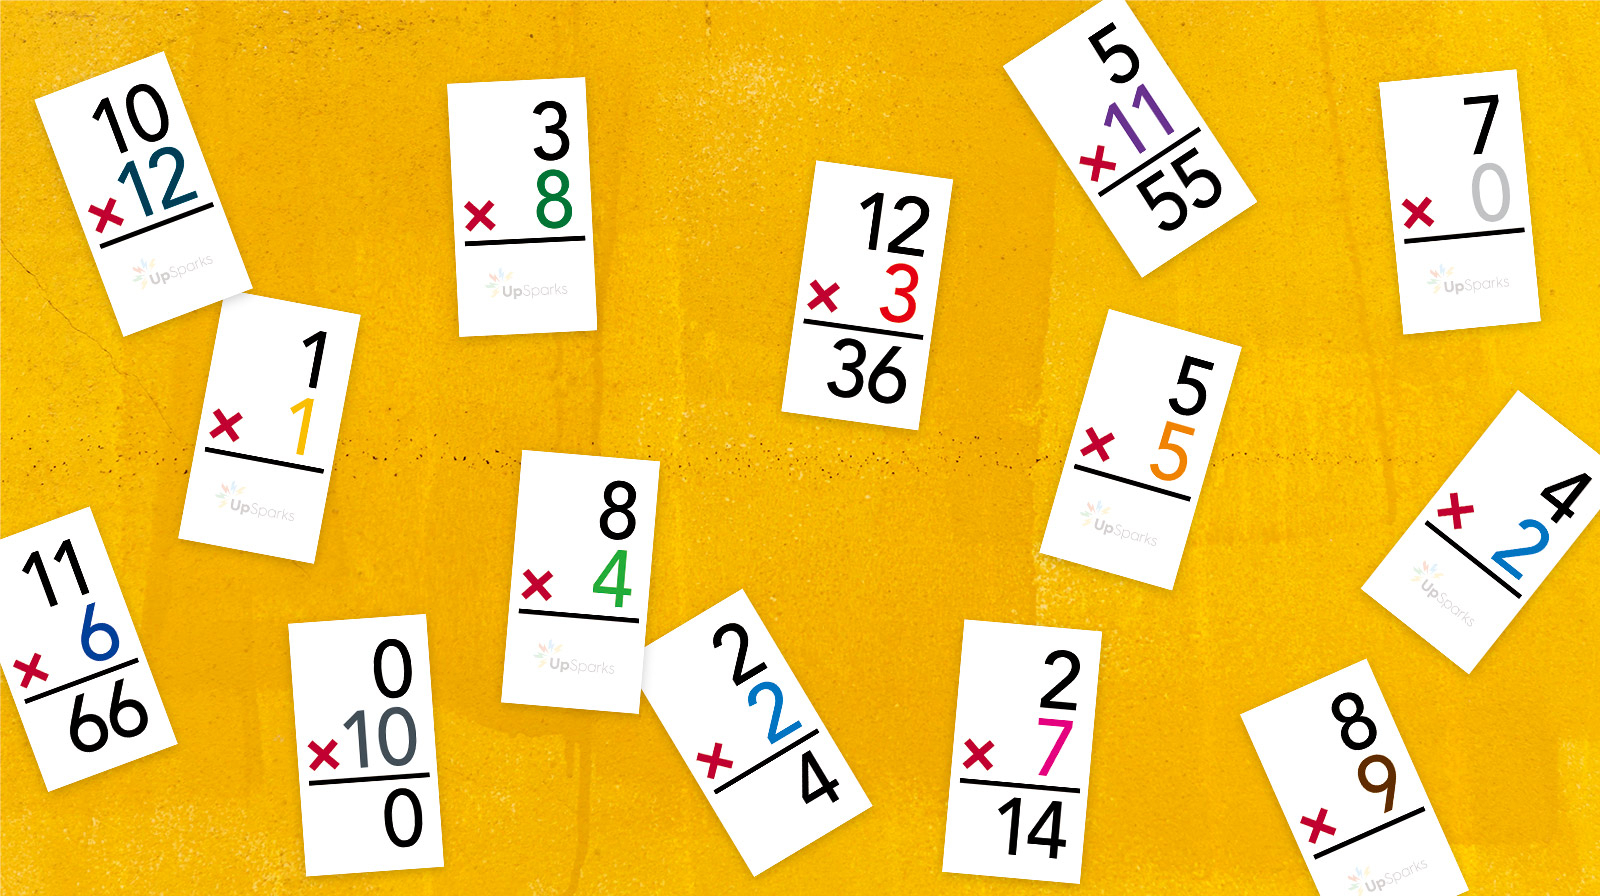 Free Multiplication Flash Cards Printable Sheets From Upsparks throughout Printable Multiplication Facts Cards